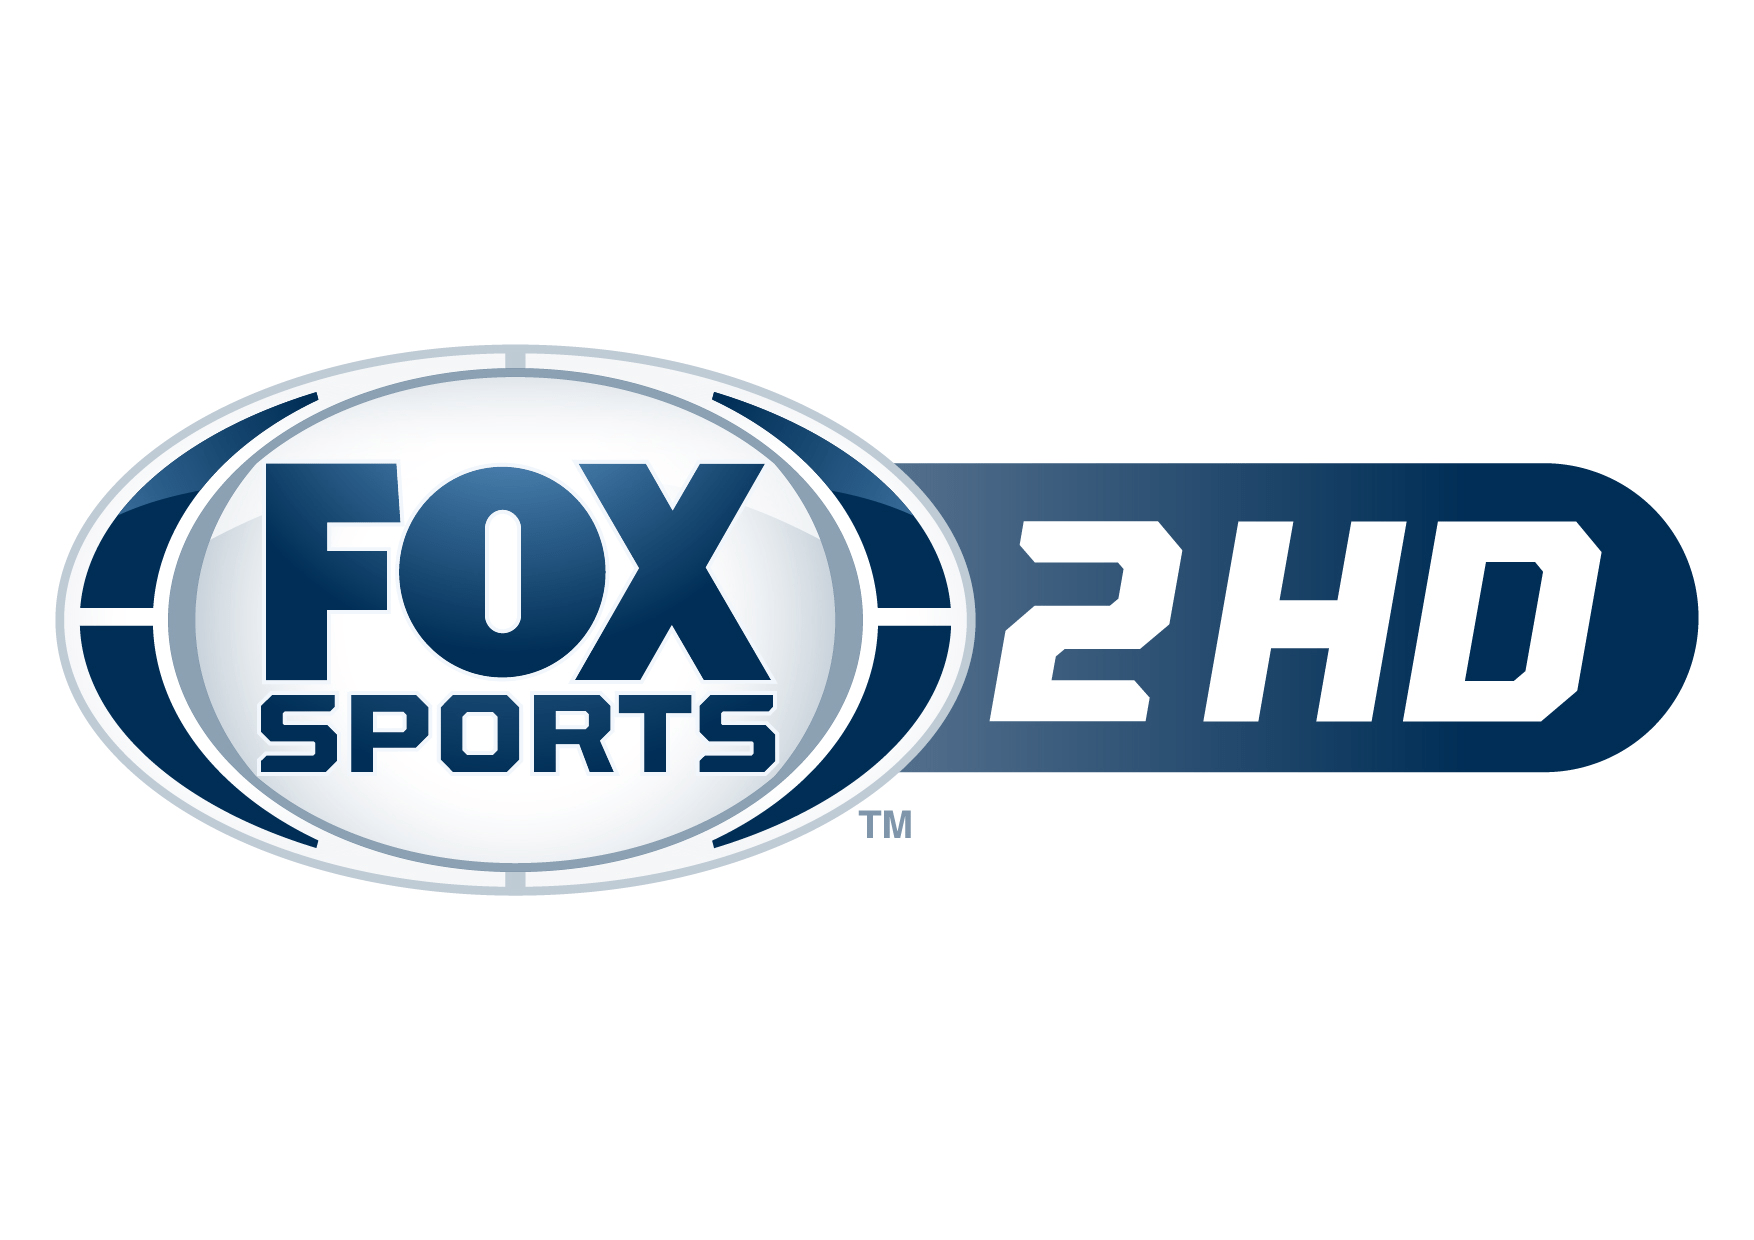 Fox Sports 2 HD al via su Sky in alta definizione | Digitale terrestre: Dtti.it